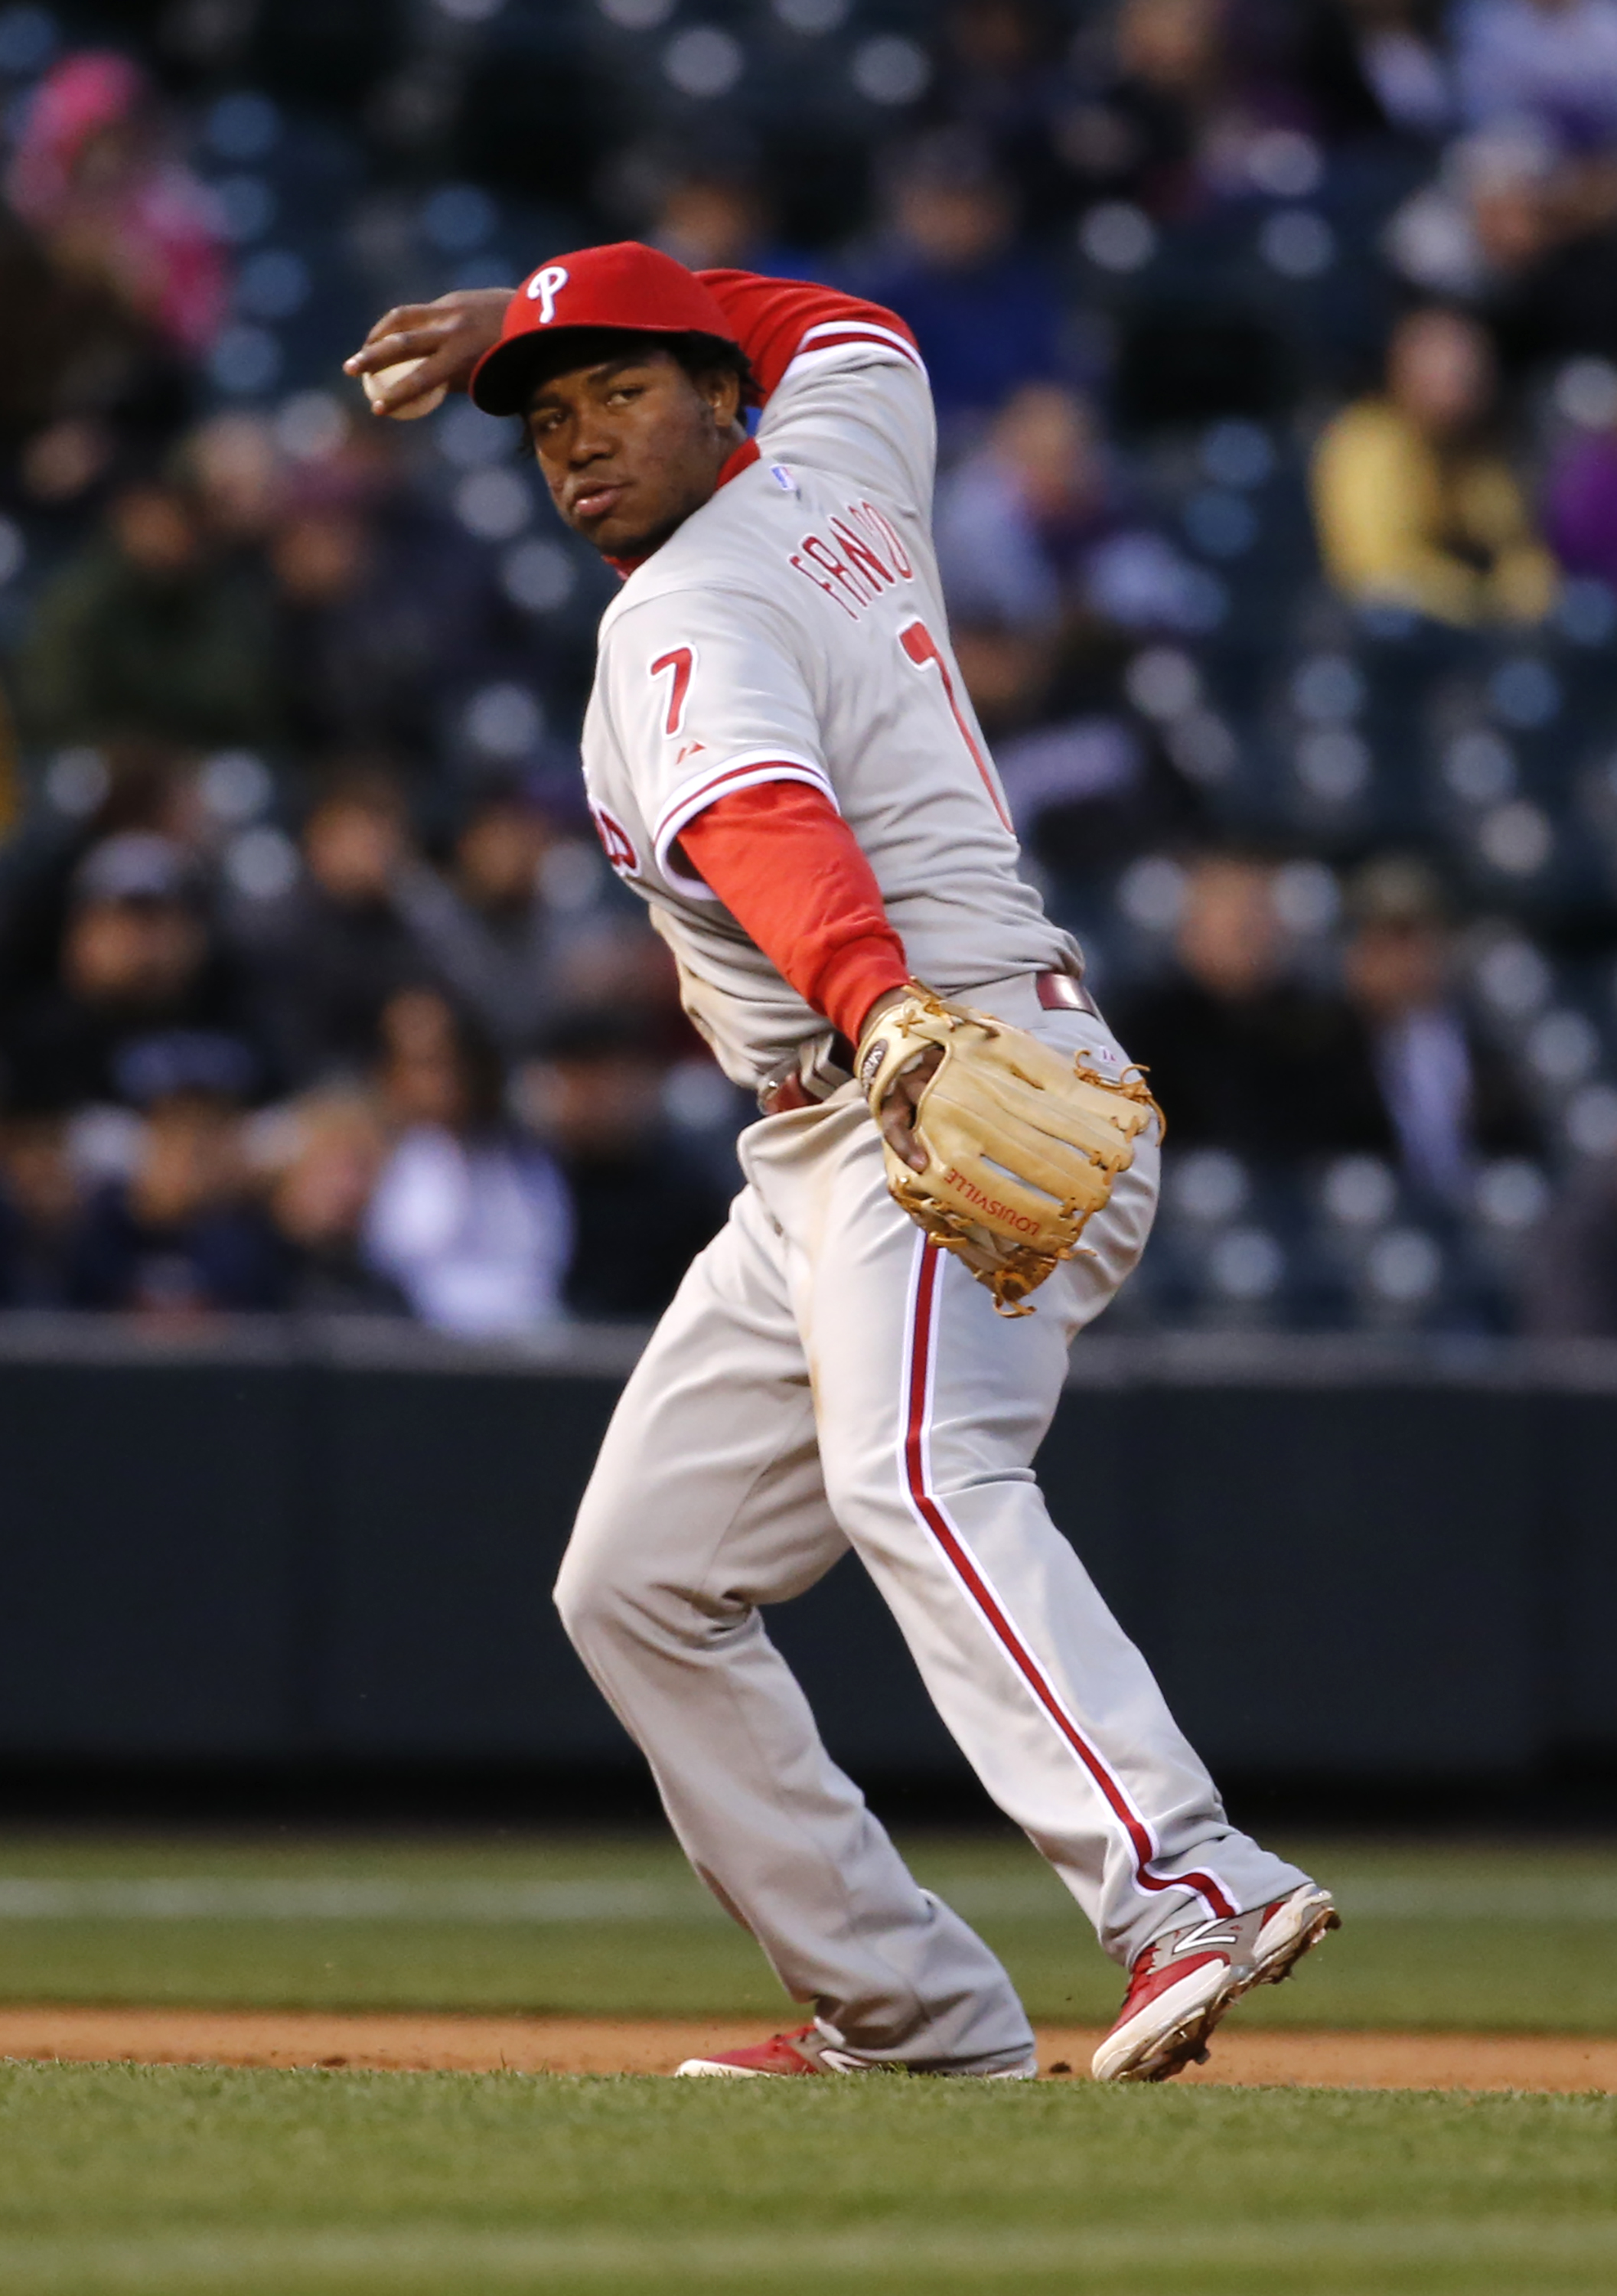 Philadelphia Phillies third baseman Maikel Franco throws out Colorado Rockies' Troy Tulowitzki at first during the third inning of a baseball game Tuesday, May 19, 2015, in Denver. (AP Photo/Jack Dempsey)